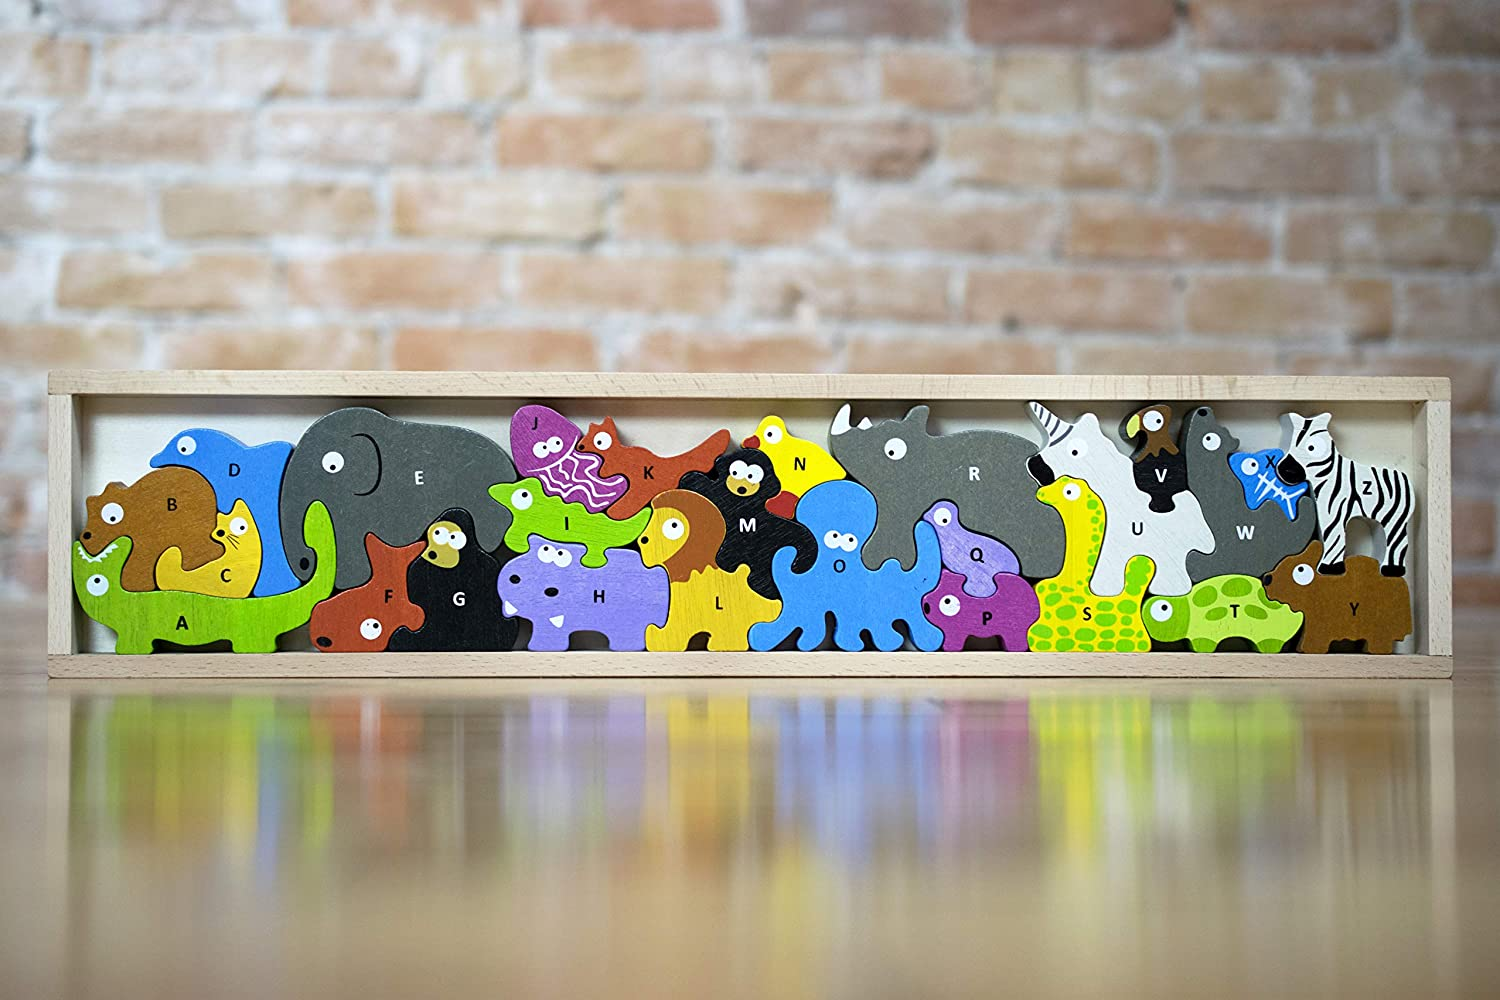 BeginAgain Animal Parade A-Z Puzzle- An Alphabet of Animals in a Wooden Puzzle! - Wooden Toy ABC Puzzle Game - Award Winning Educational Toy for Toddlers by: Amazon.es: Juguetes y juegos